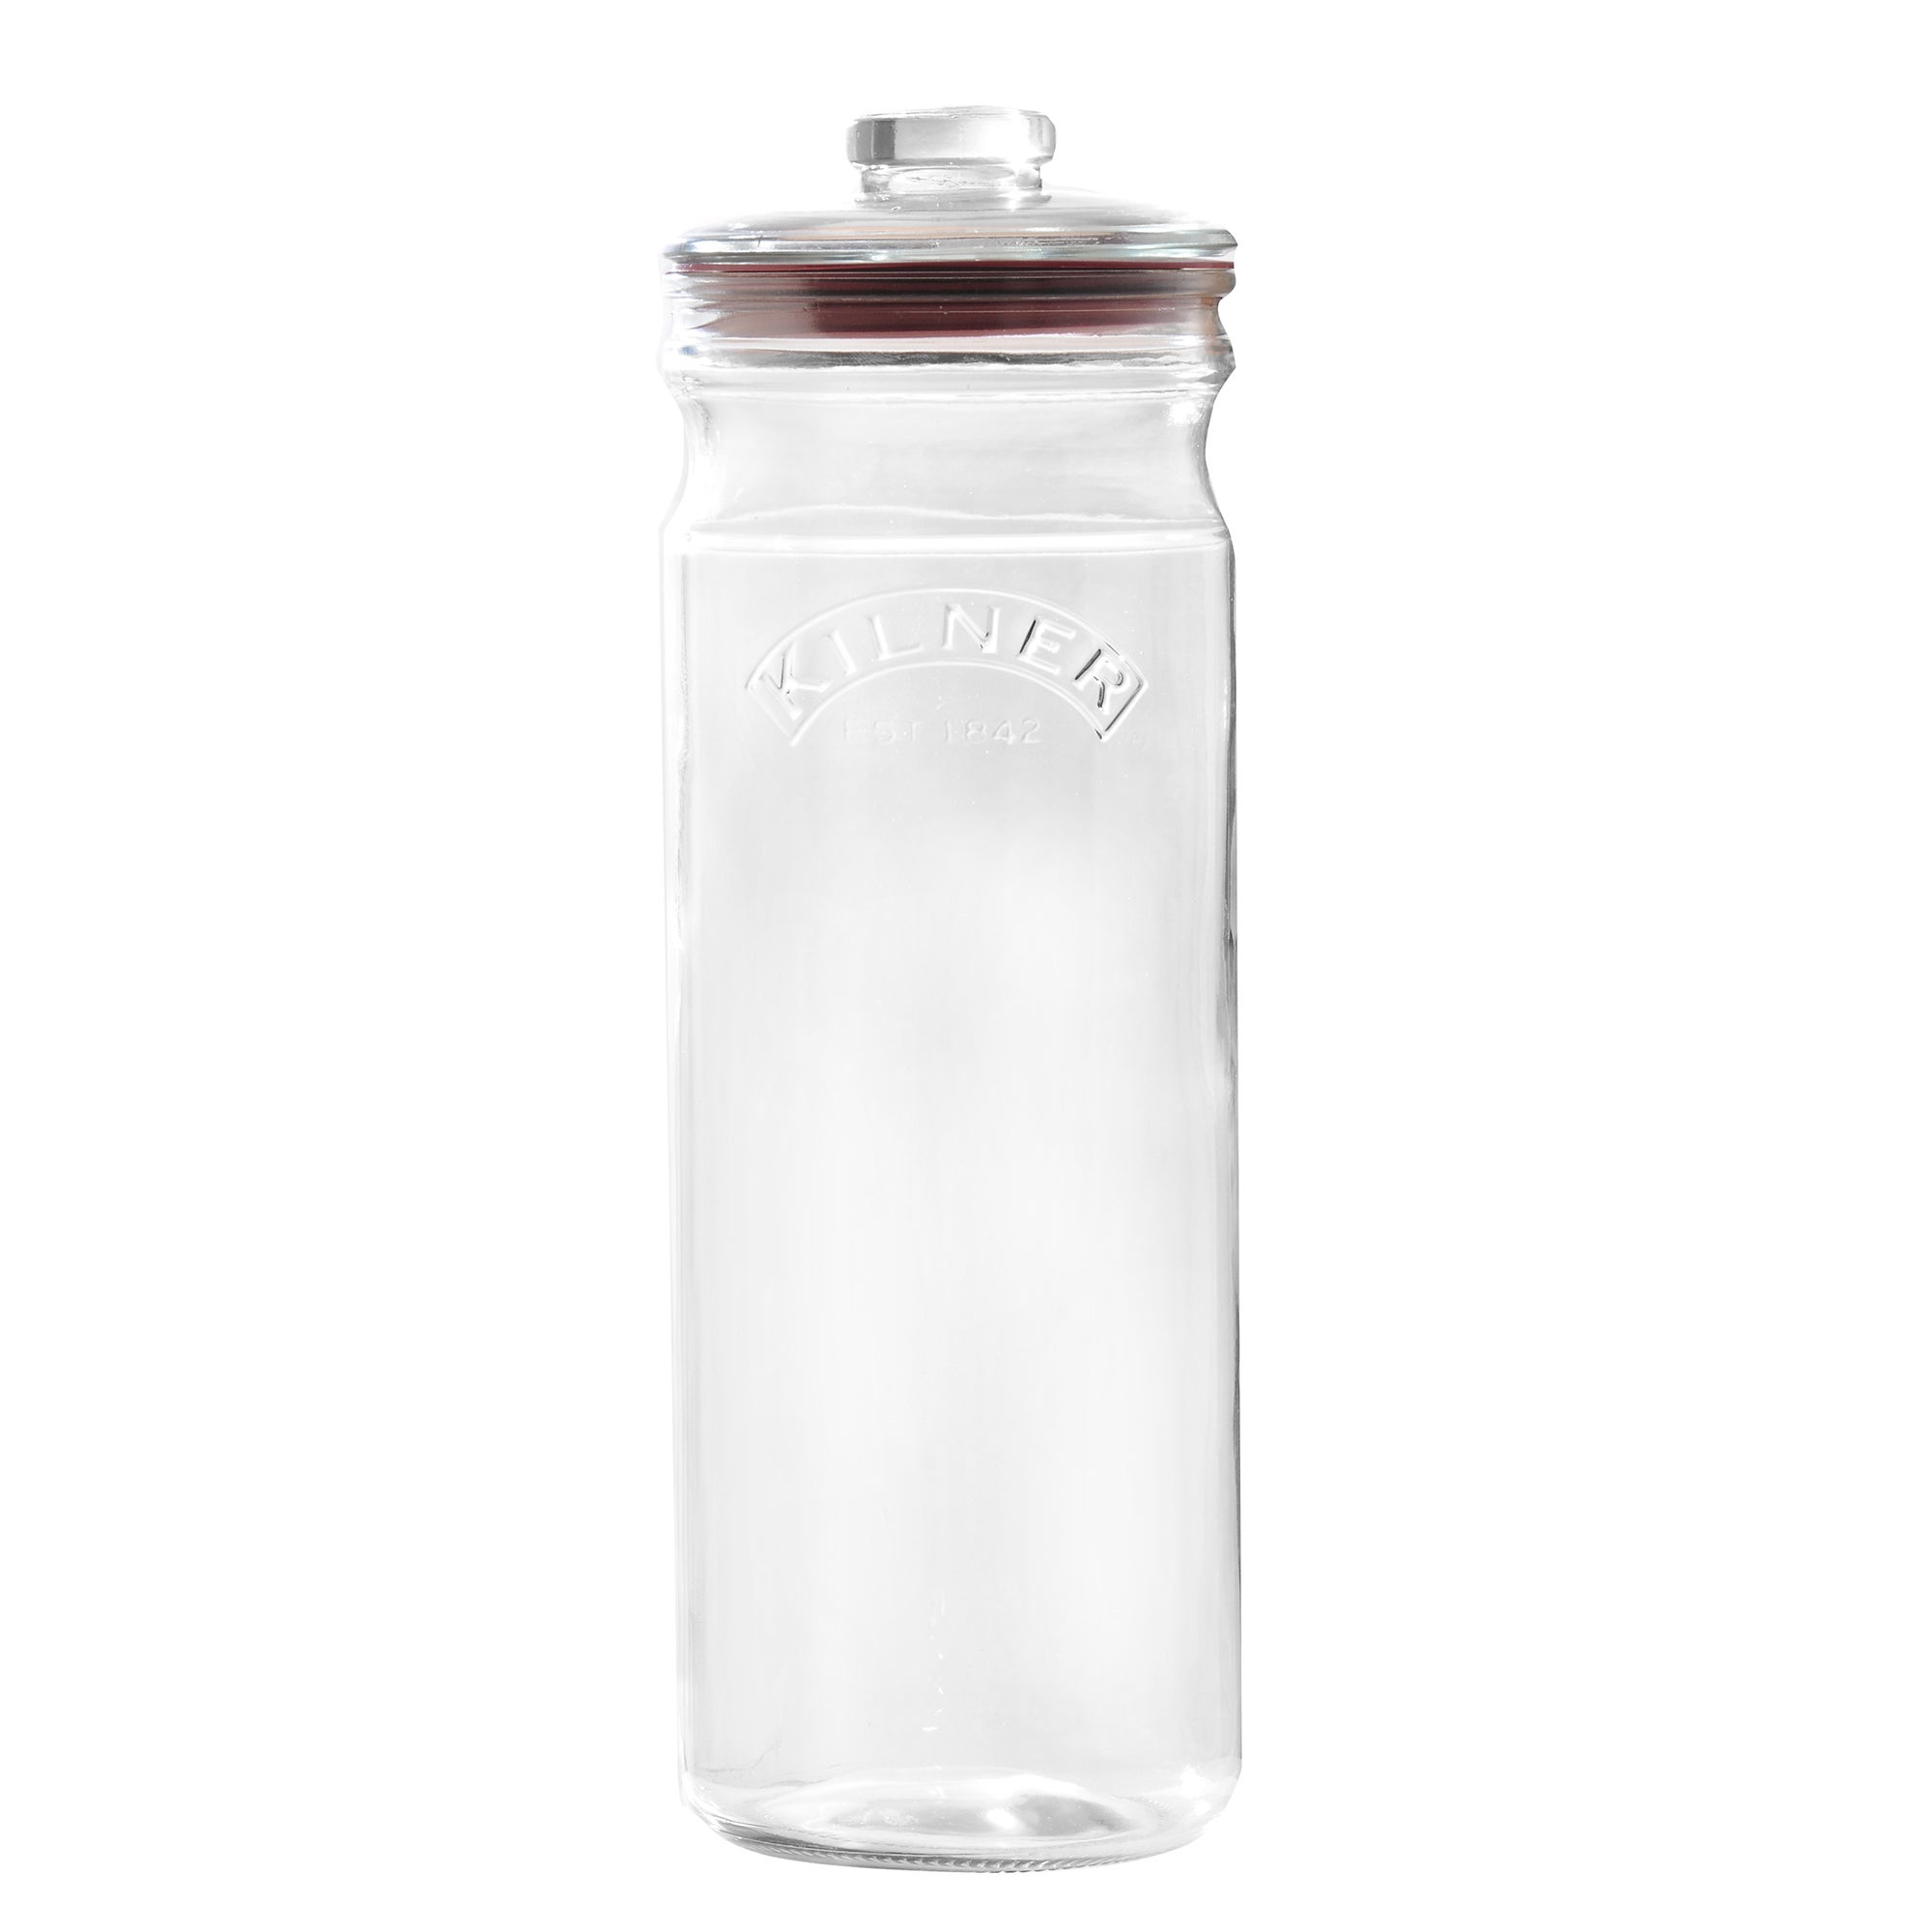 Kilner 2.4 Litre Push Top Jar